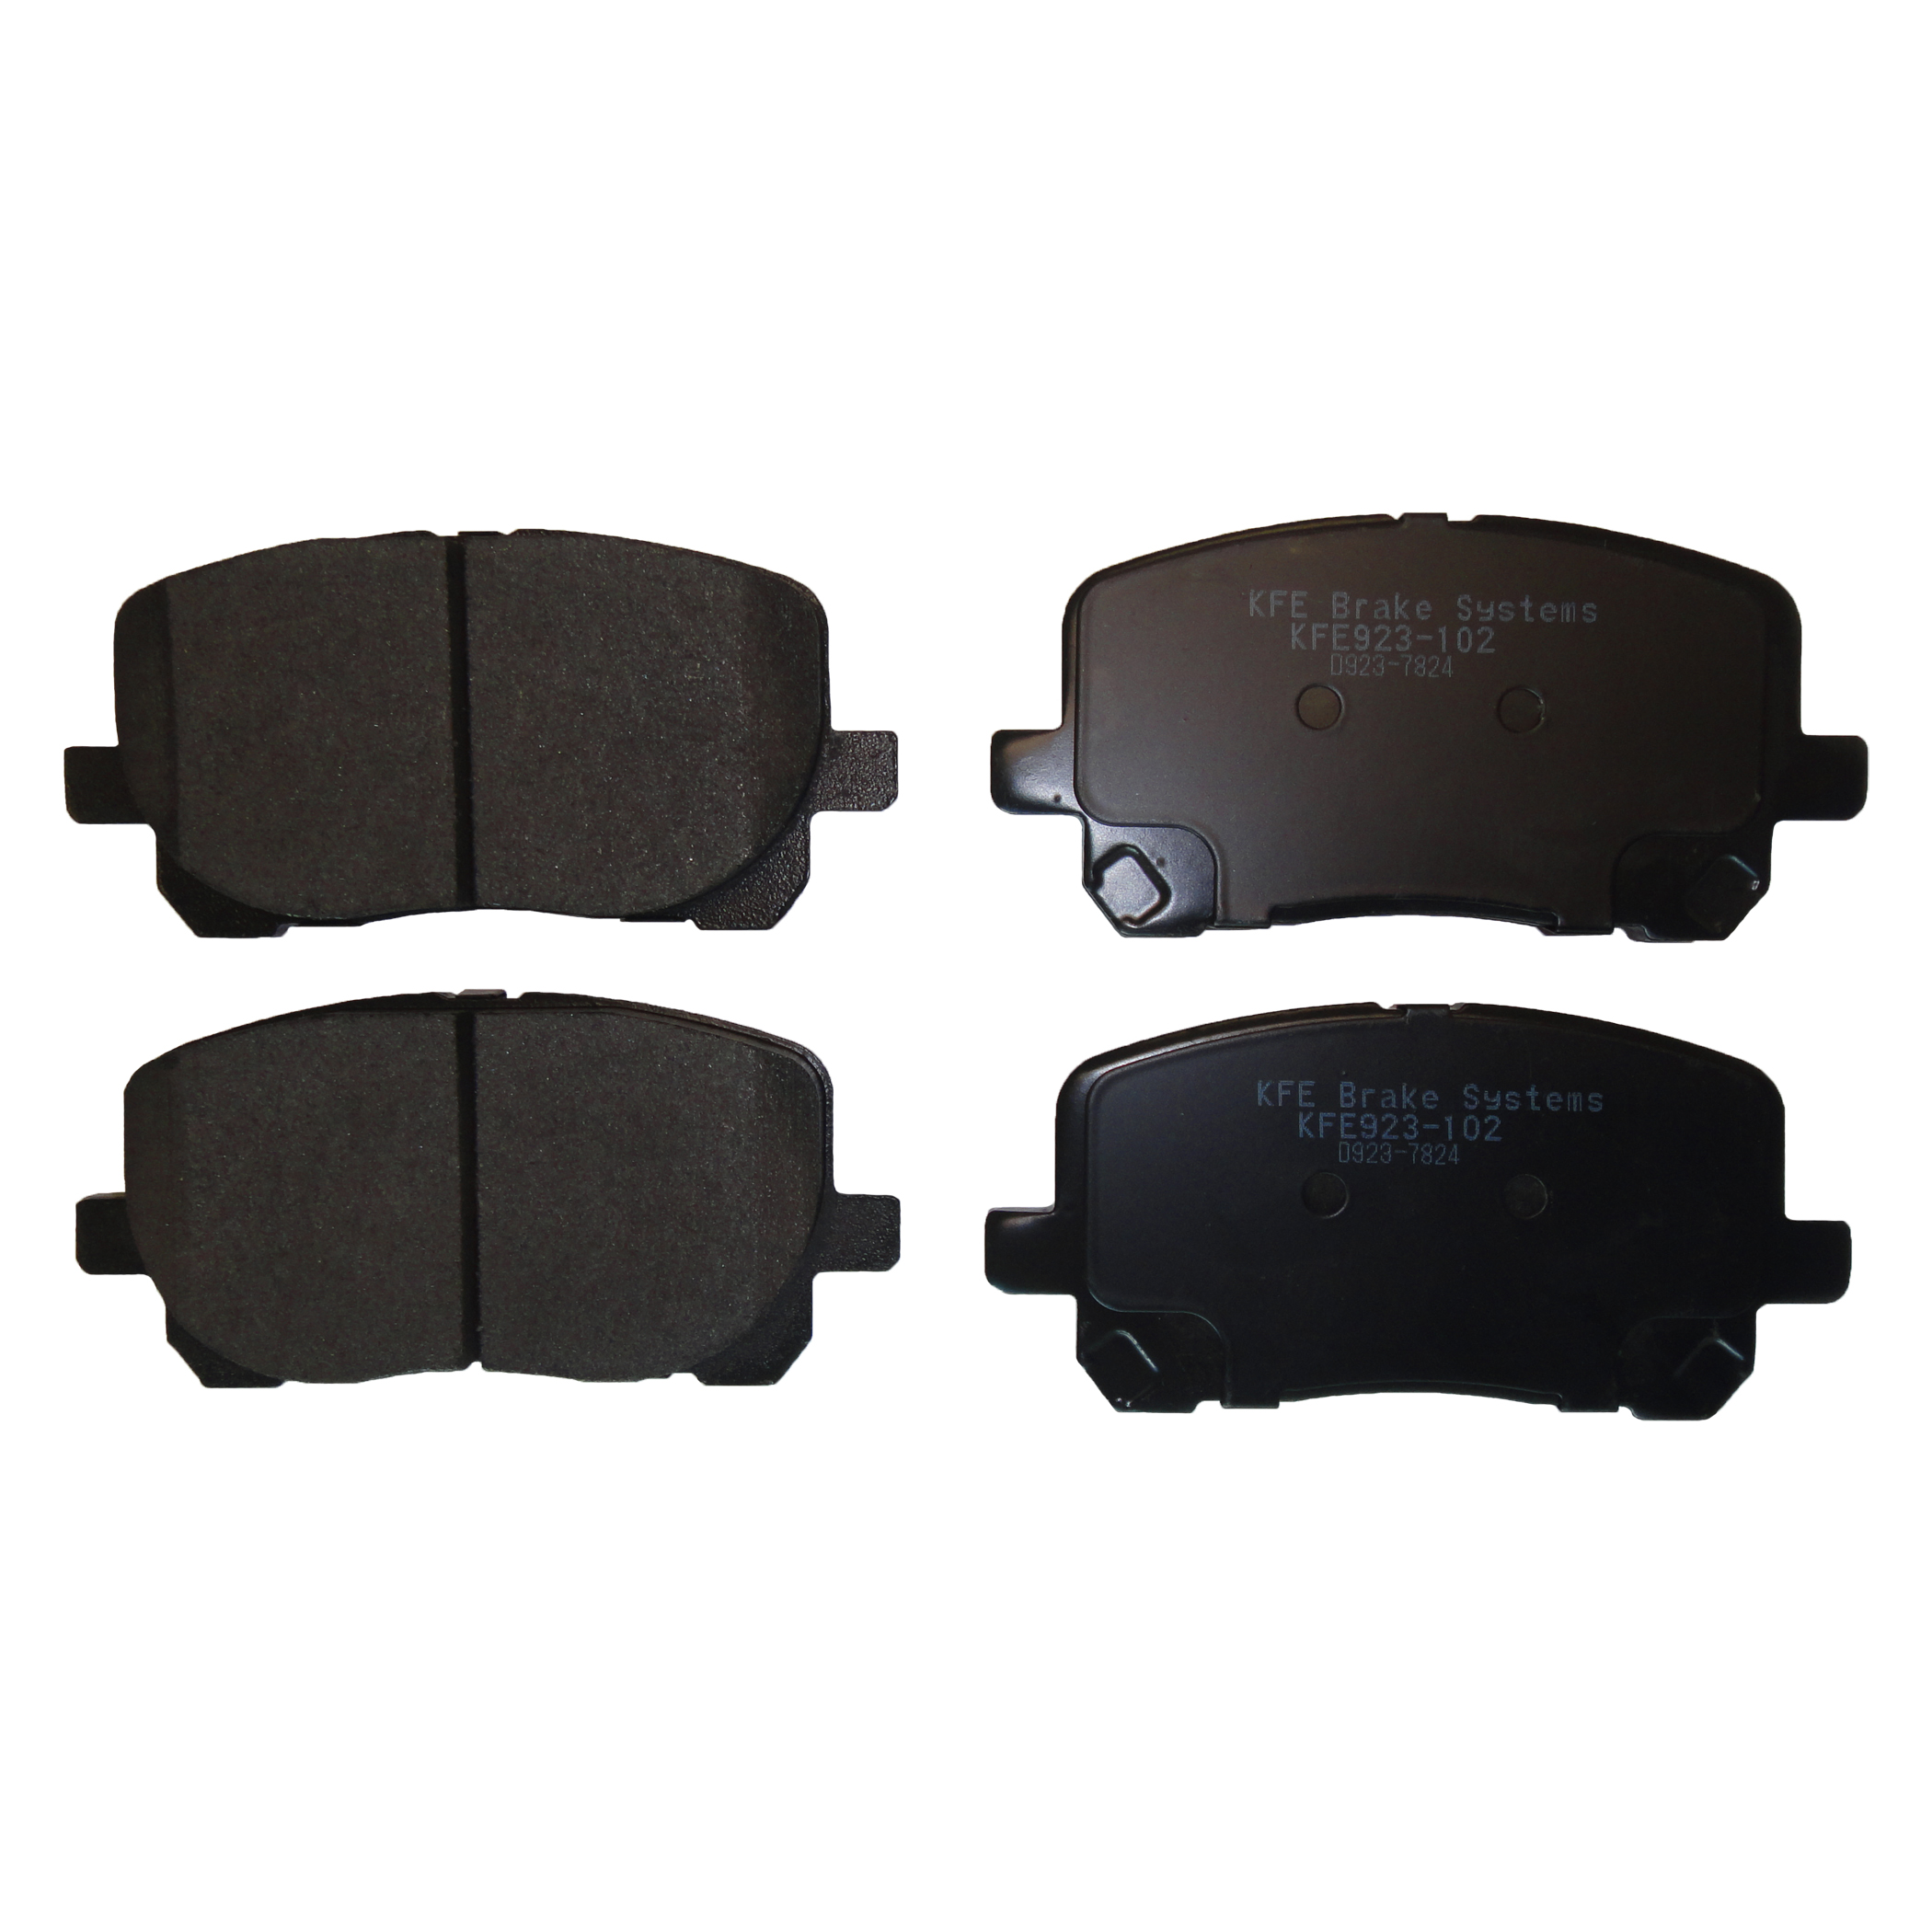 KFE923-102 Quiet Comfort OE Brake Pad